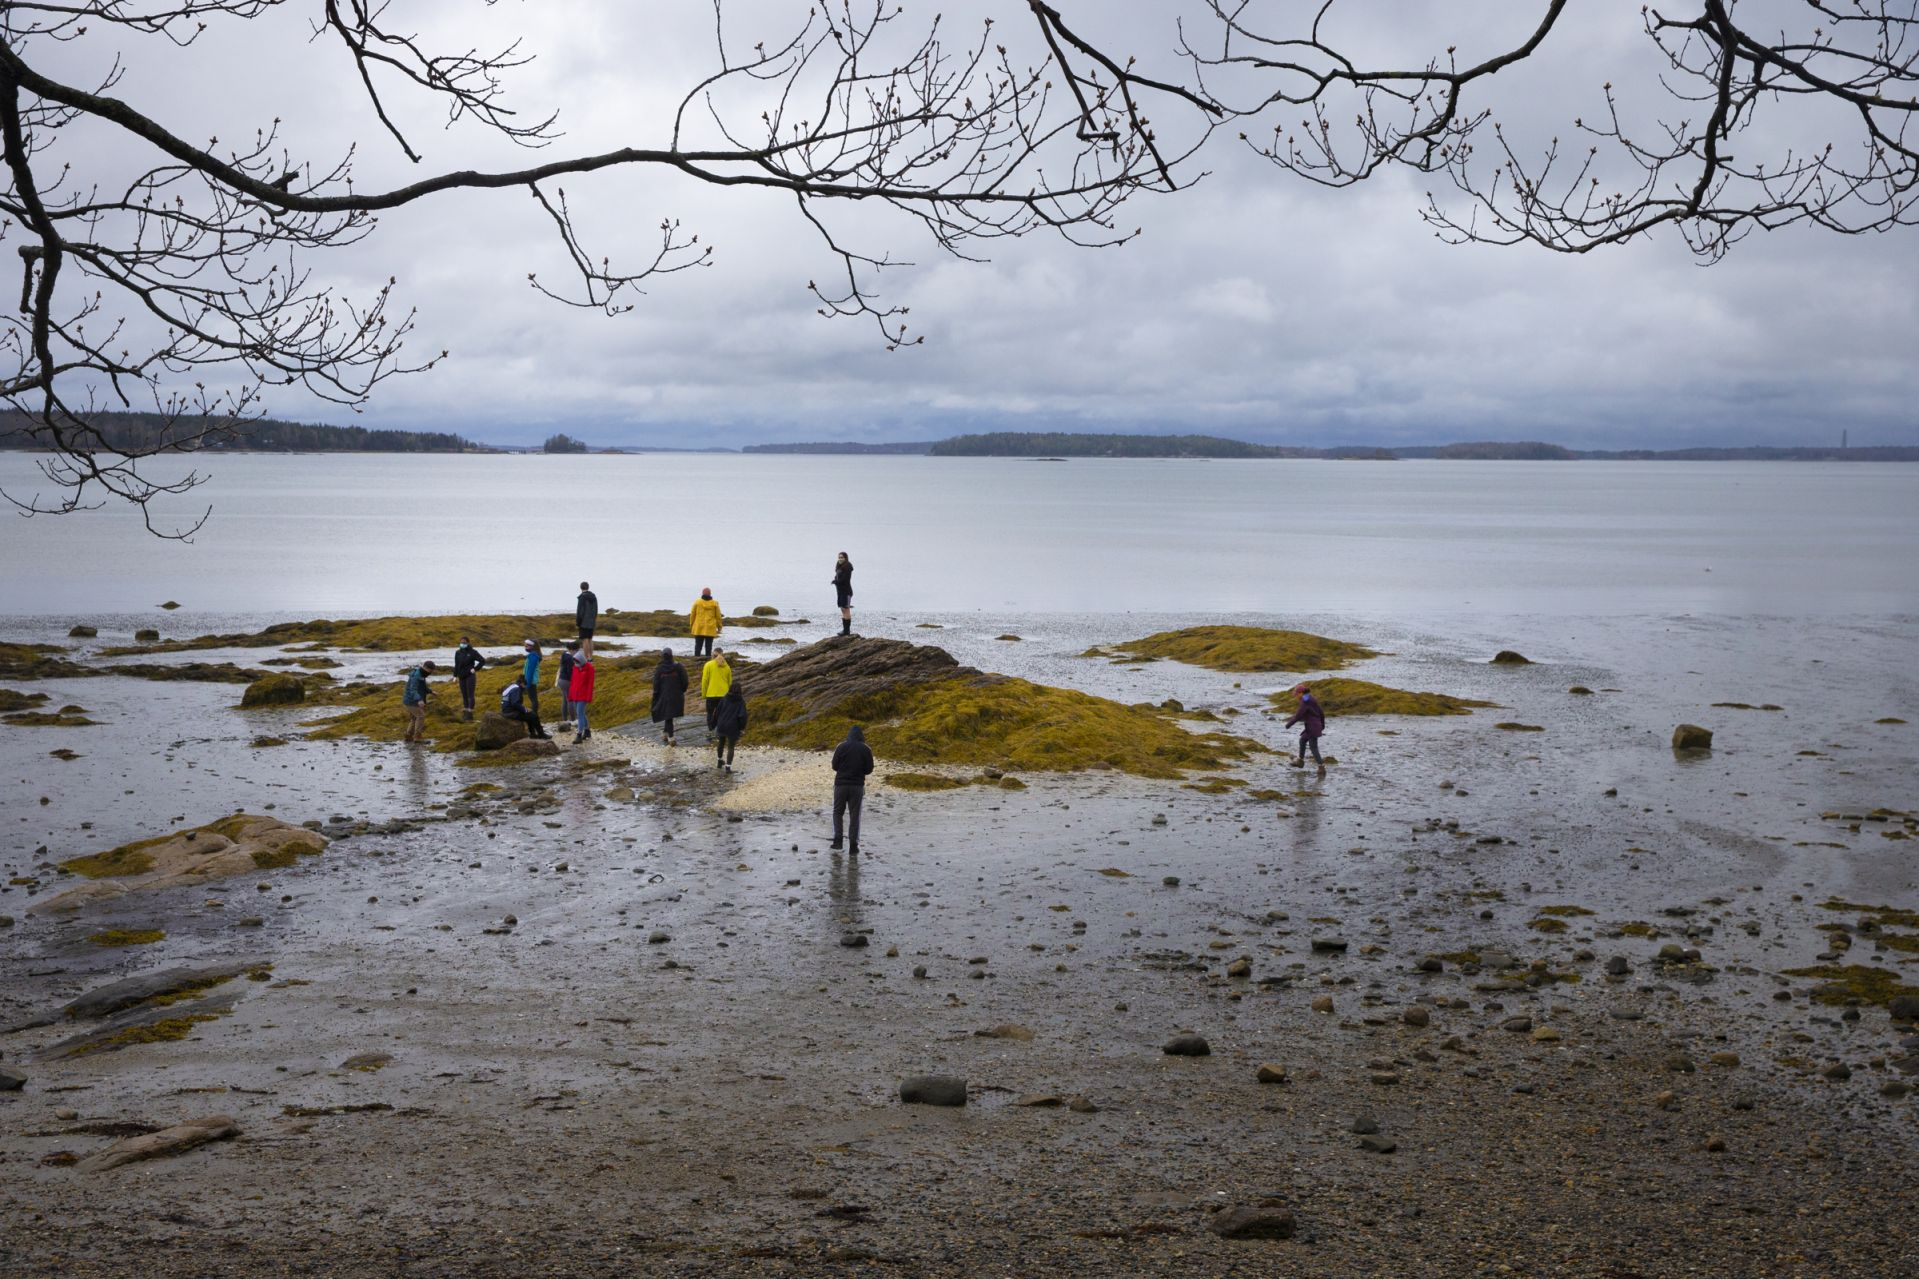 After their work at the barn, everyone decamped to the Wolfe's Neck shoreline to take in views of Casco Bay and its islands. (Phyllis Graber Jensen/Bates College)